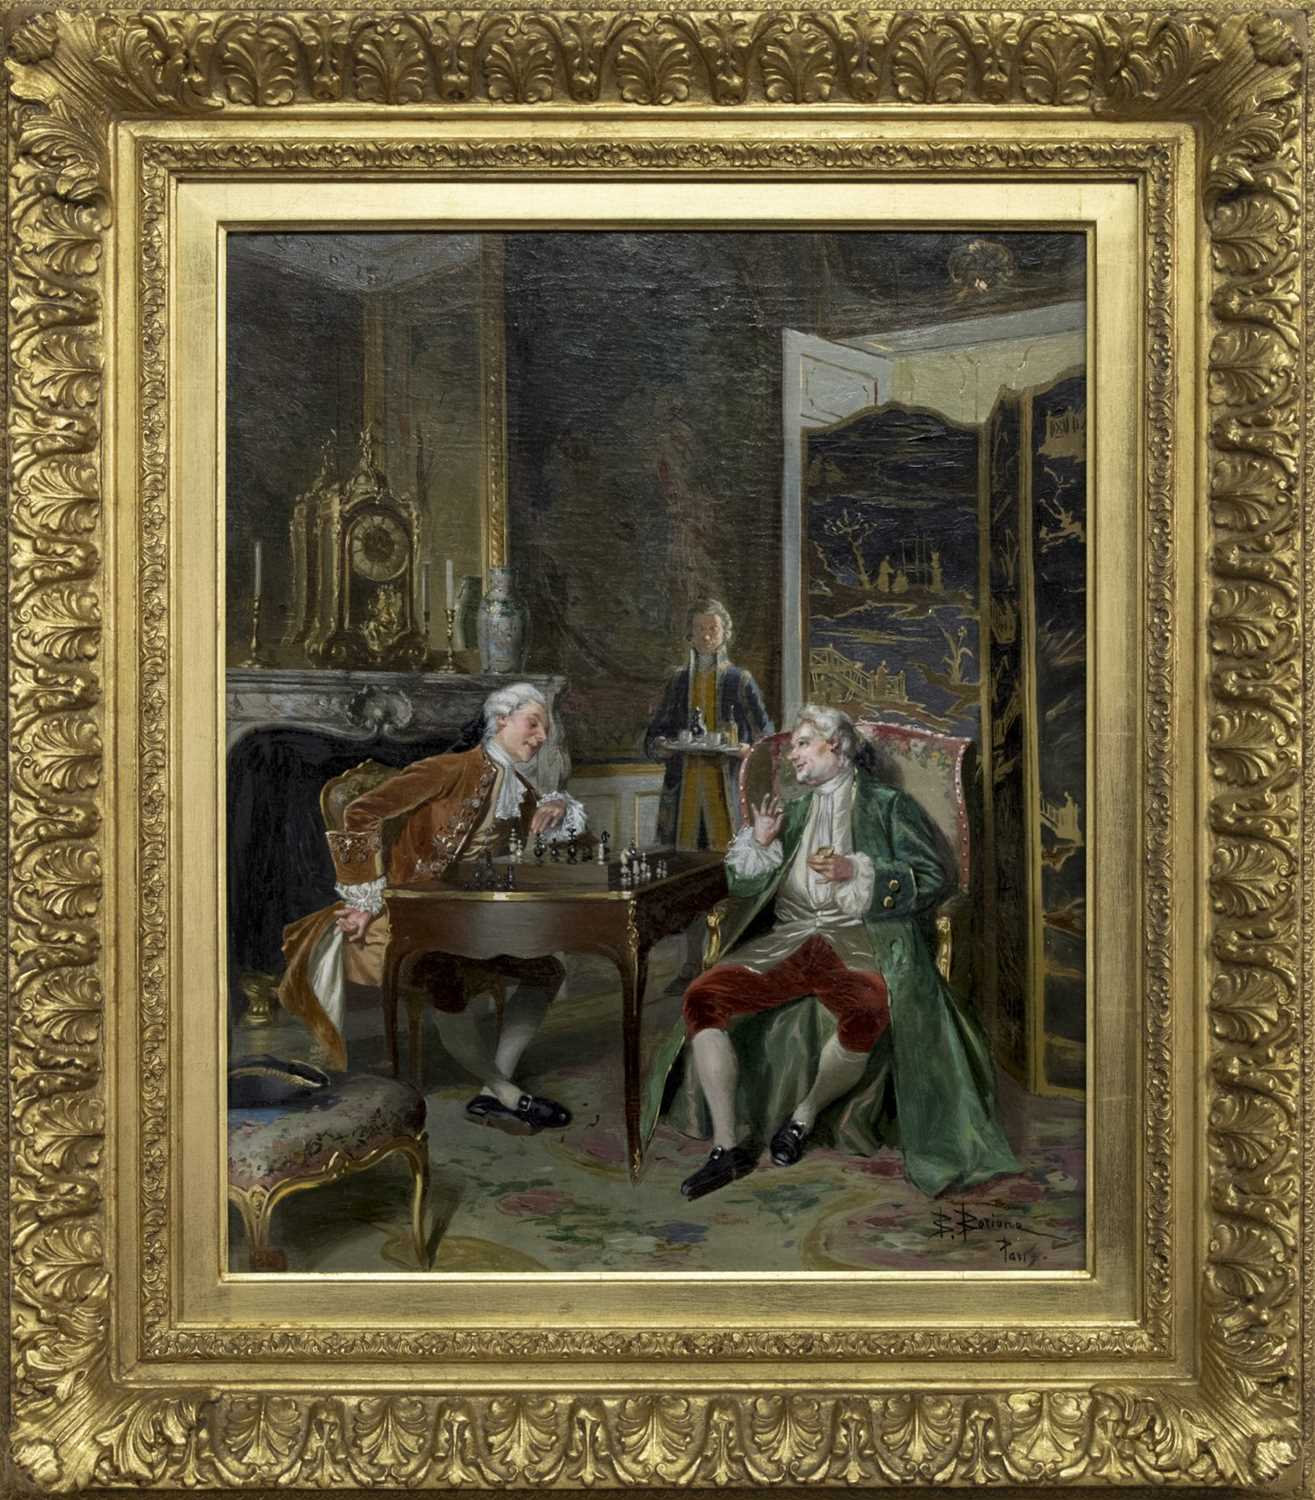 Lot 27 - CHESS PLAYERS, AN OIL BY BERARD-LOUIS BORIONE